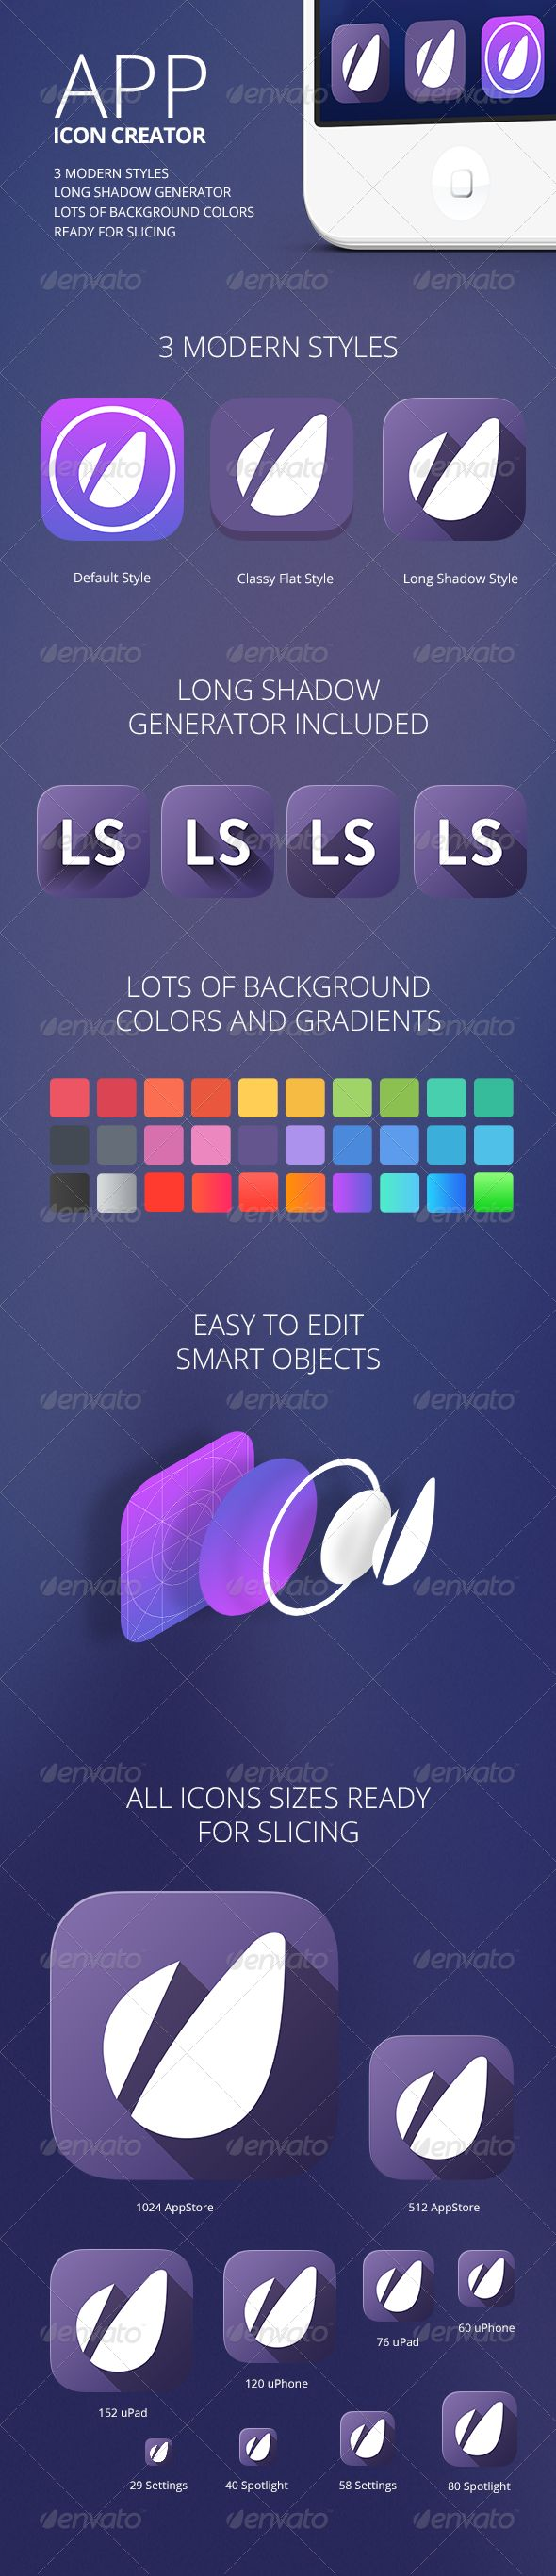 App Icon Creator with Flat Shadow Generator | Download: http://graphicriver.net/item/app-icon-creator-with-flat-shadow-generator/5803947?ref=ksioks